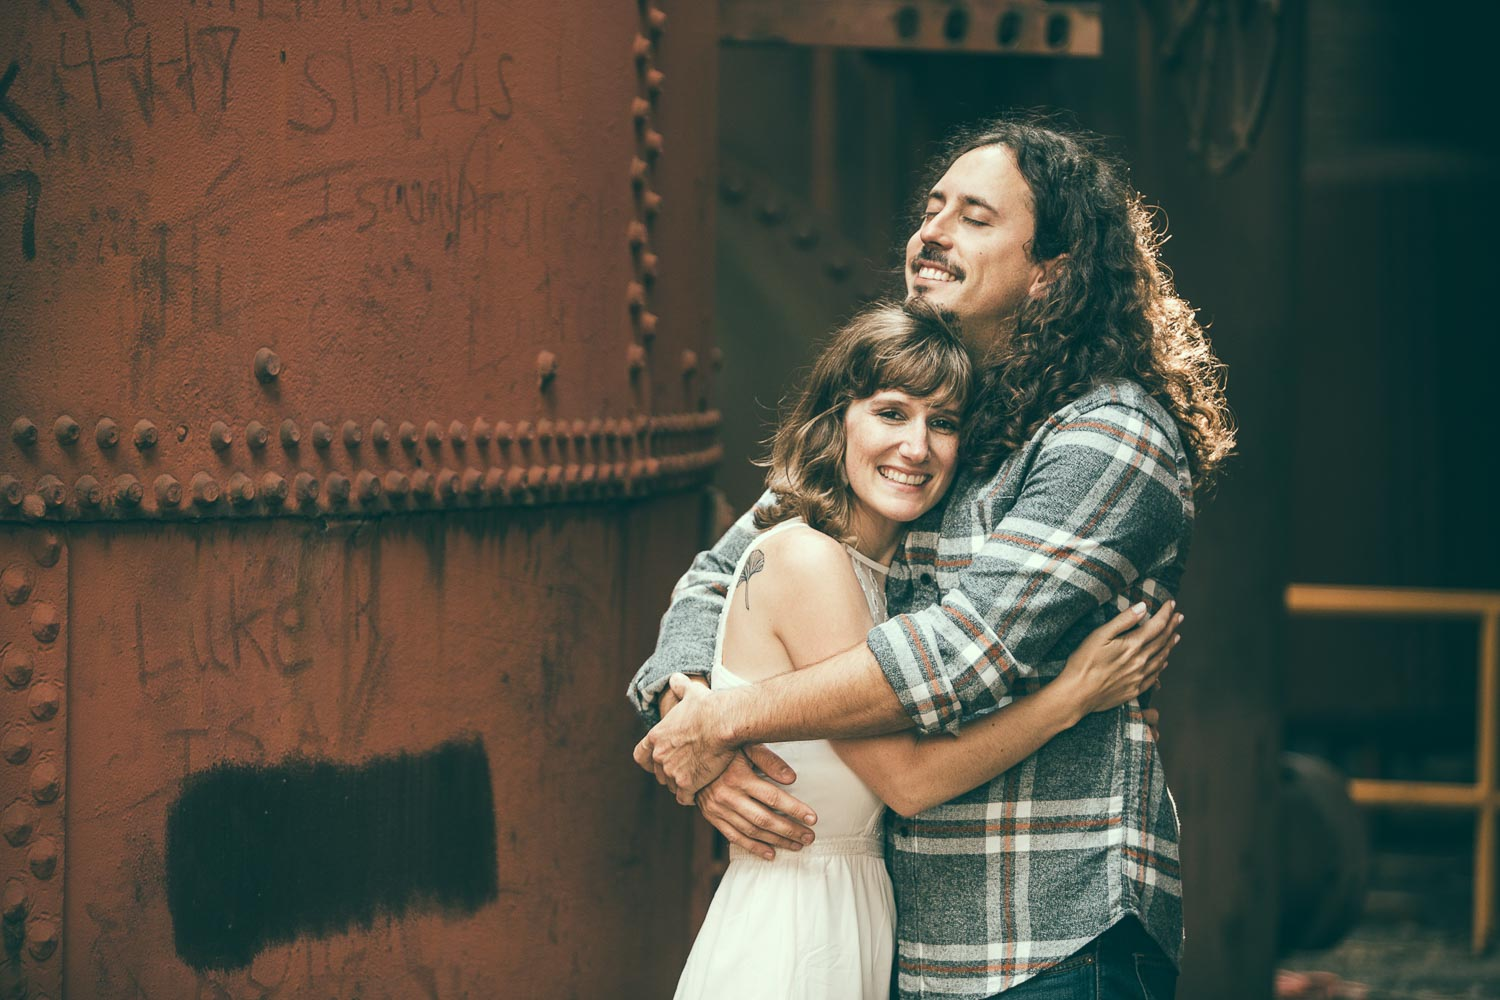 Birmingham Alabama engagement photography at Sloss Furnaces by David A. Smith of DSmithImages Wedding Photography, Portraits, and Events